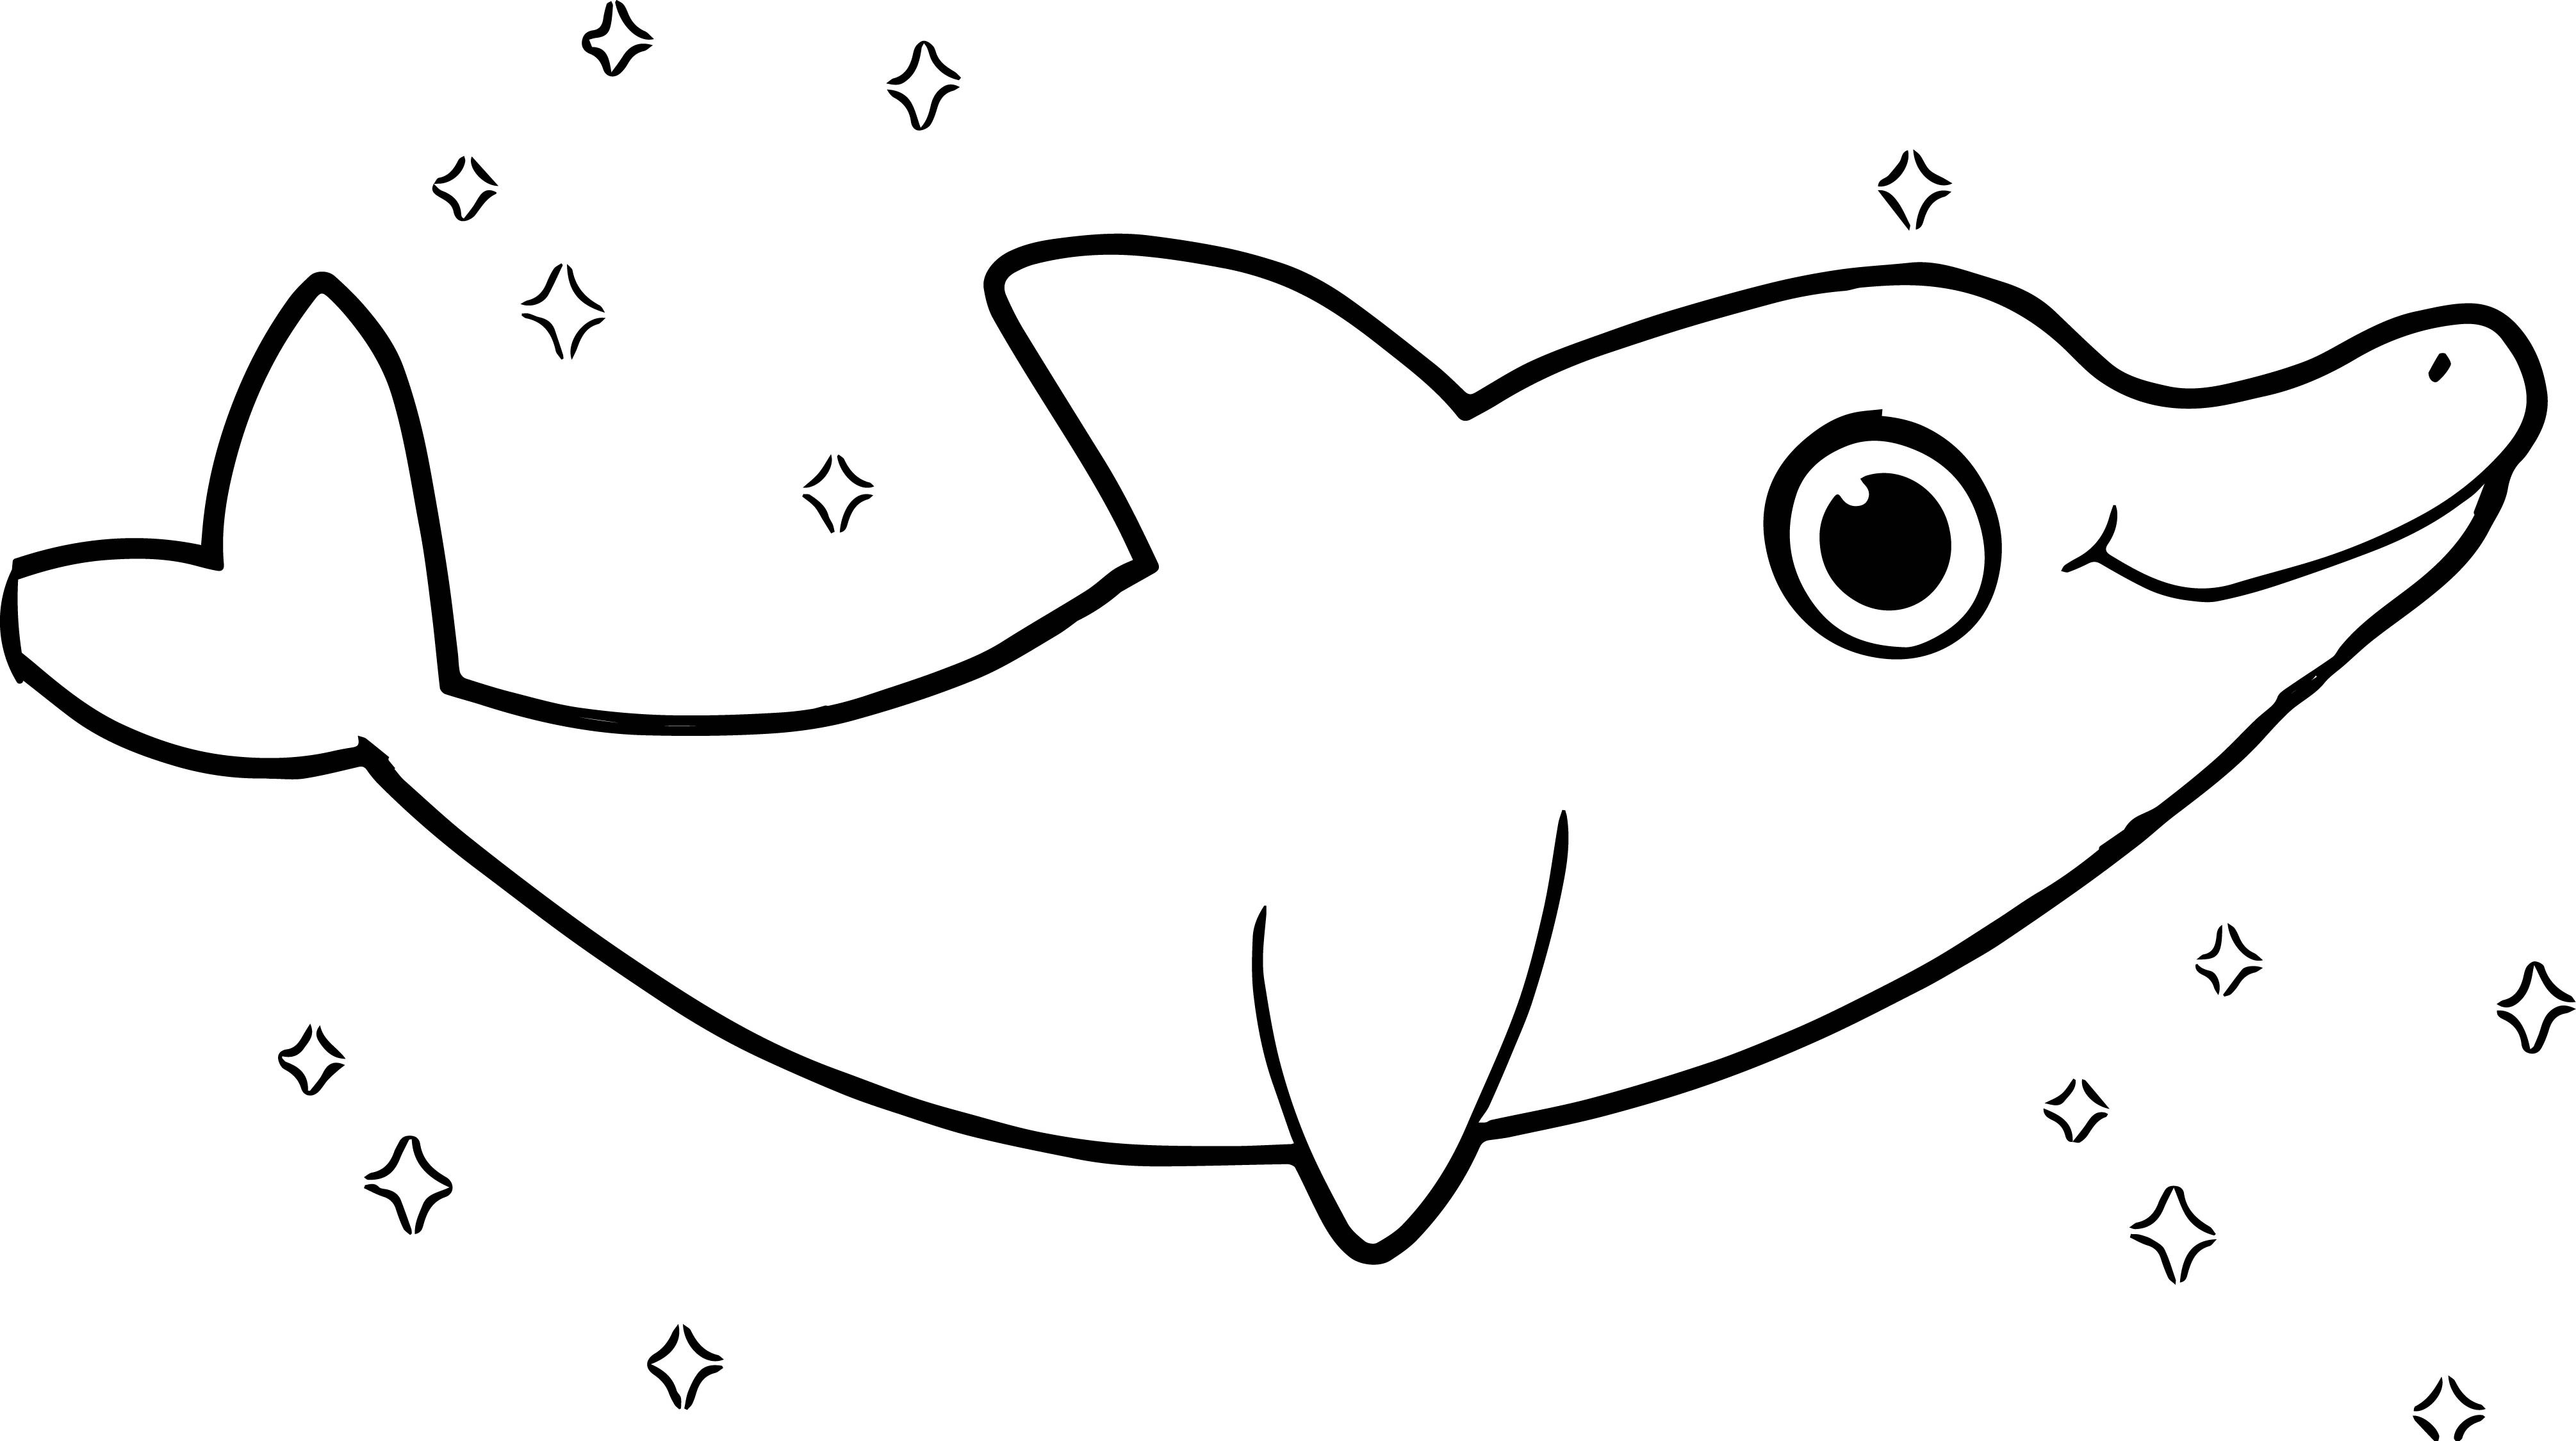 4021x2250 Printable Dolphin Coloring Pages For Kids Coloringstar Within